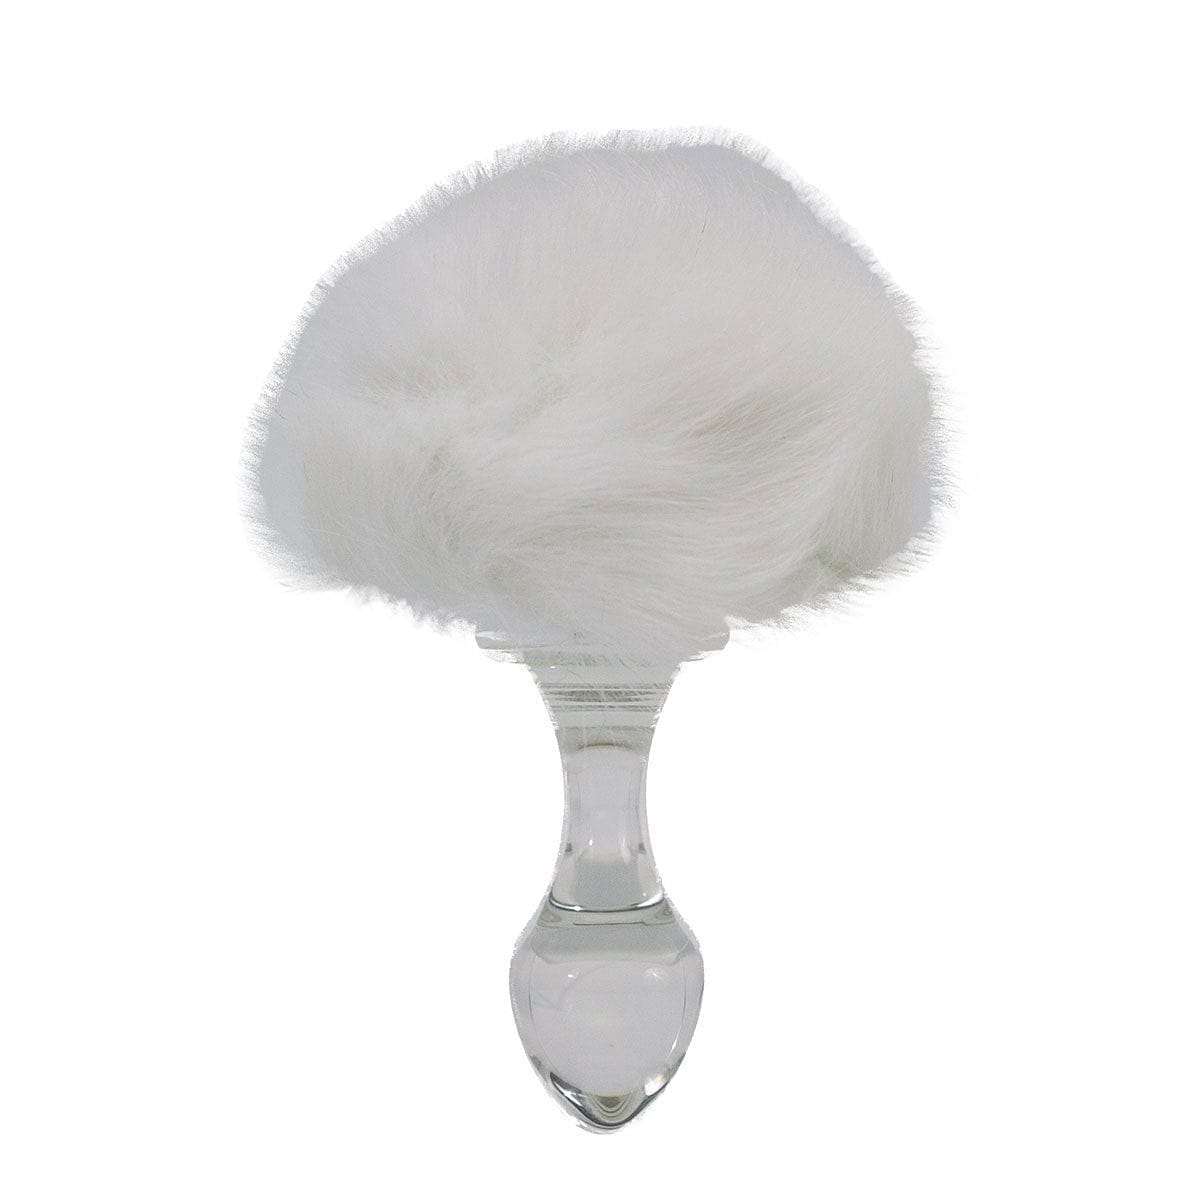 Glass Plug with Magnetic Bunny Tail by Crystal Delights - rolik